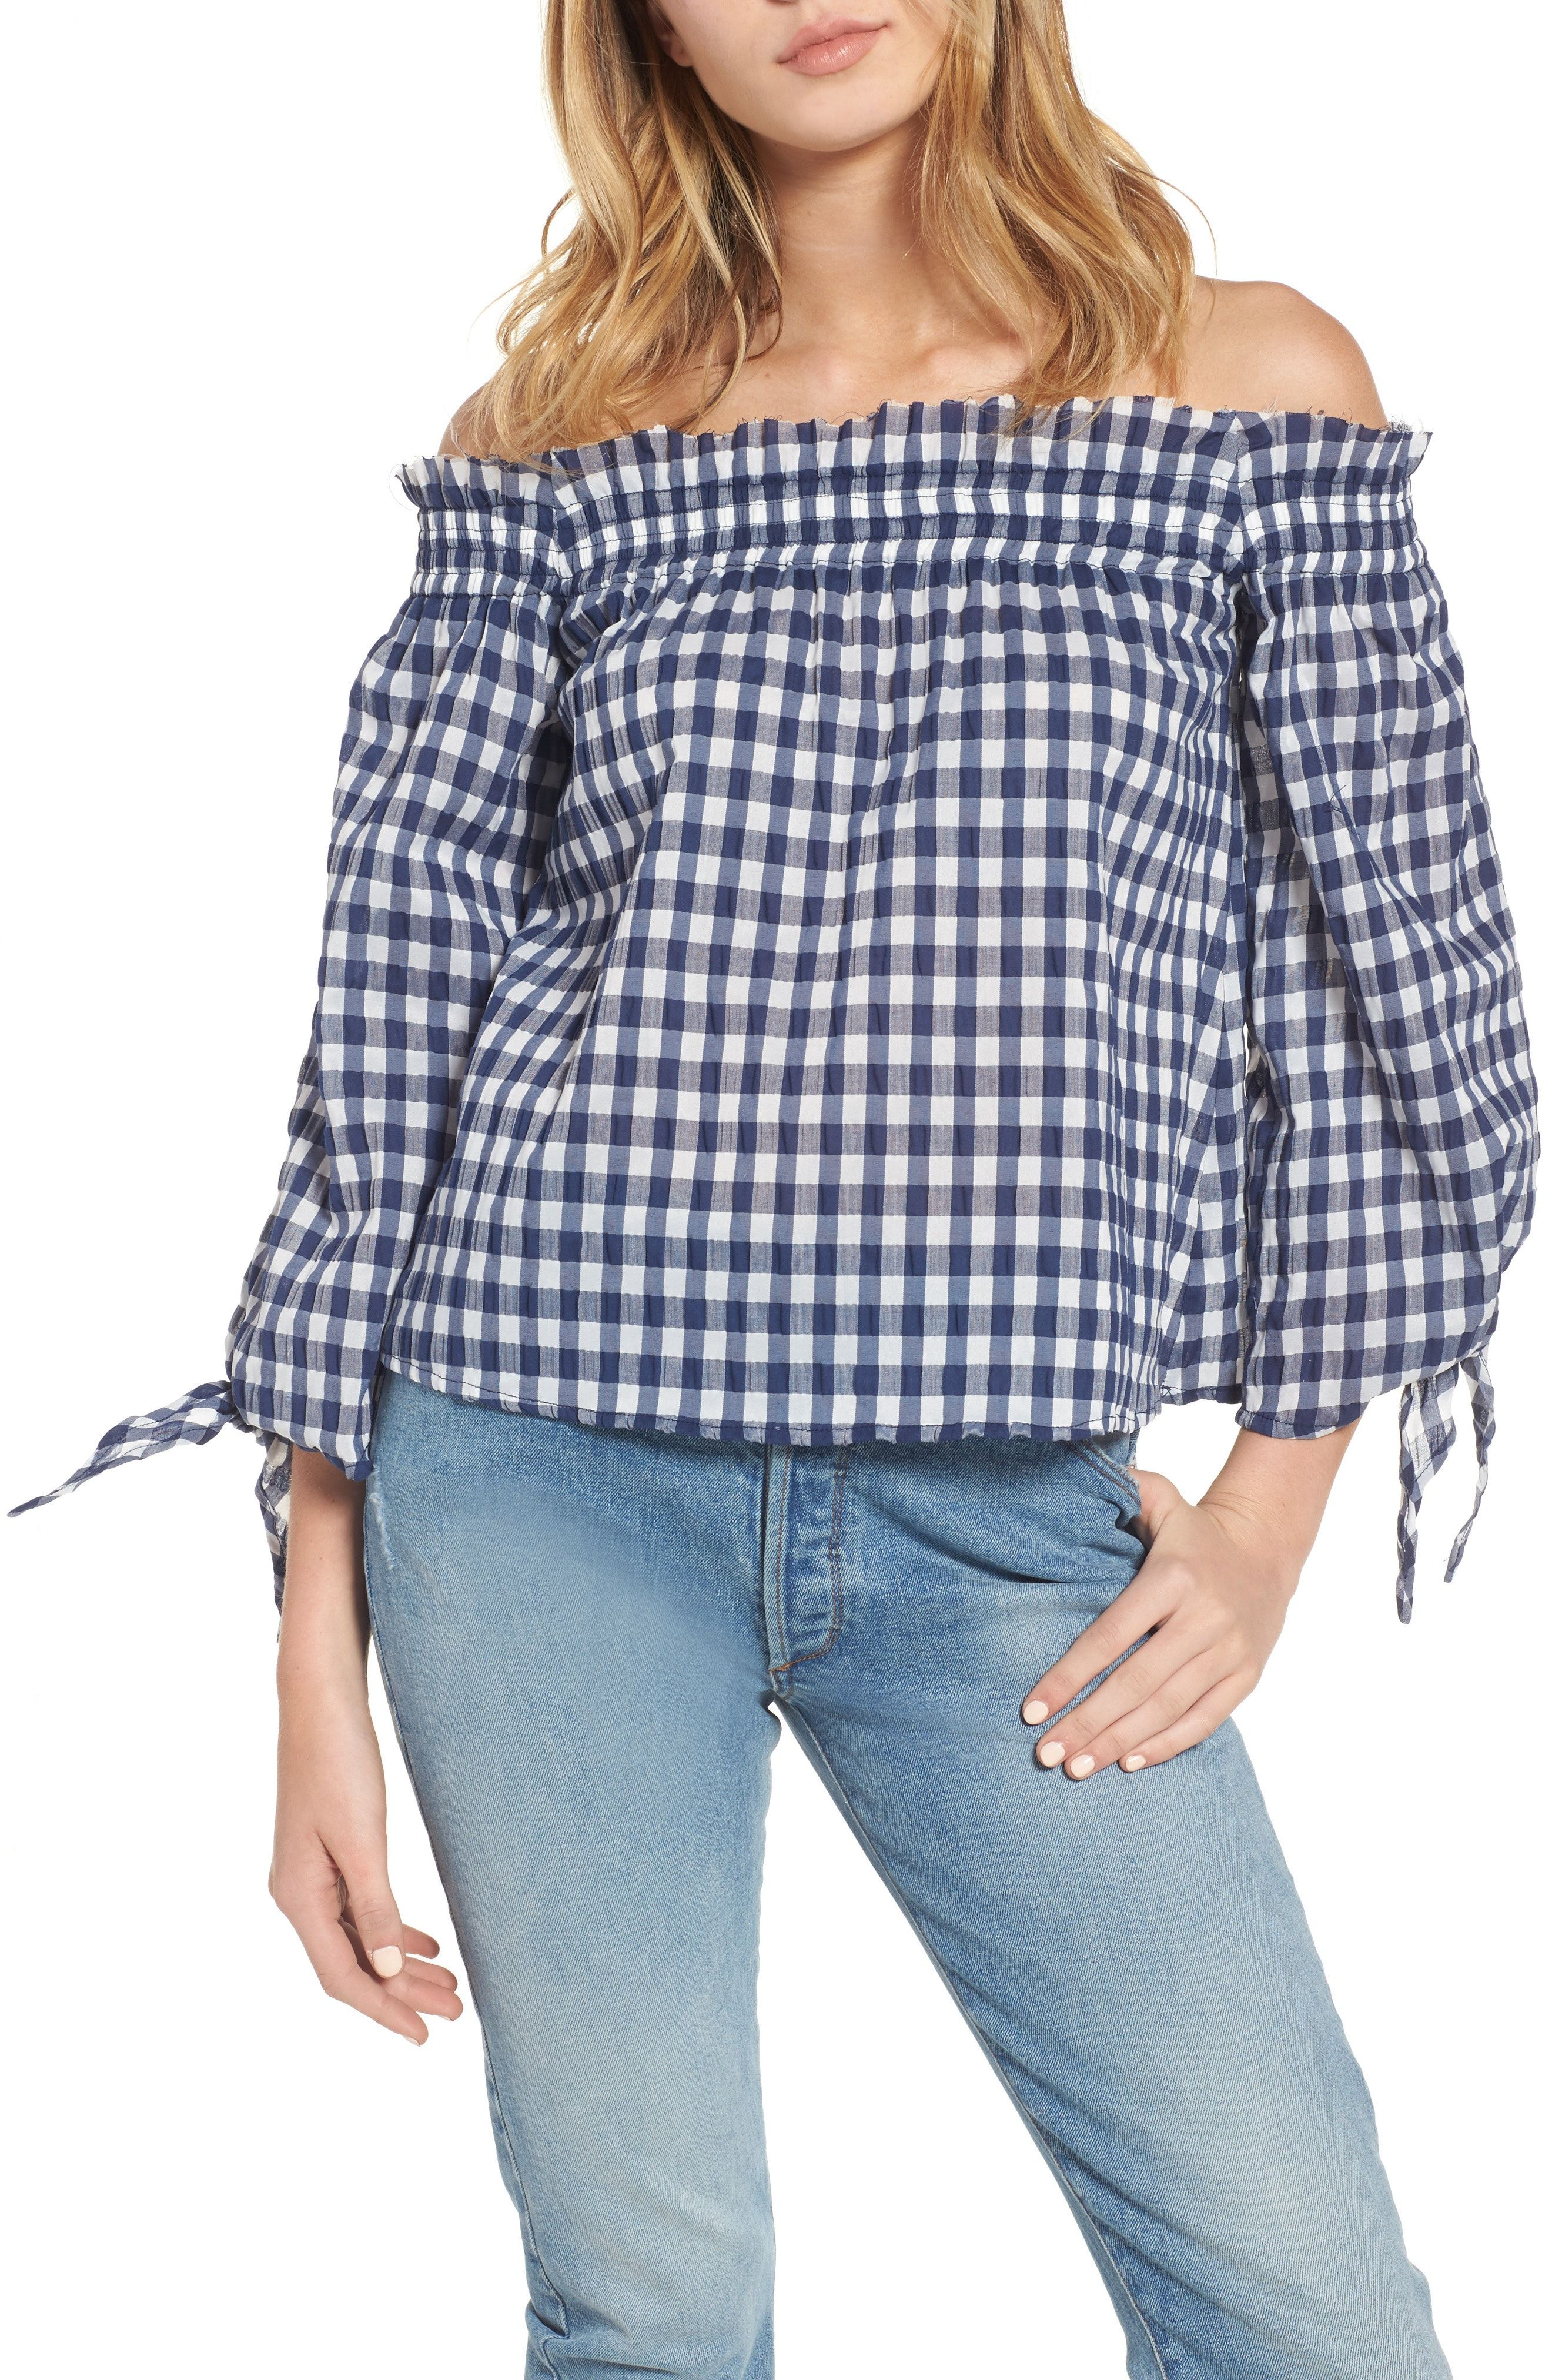 1c71044b84fef New McGuire Pina Gingham Off the Shoulder Top OLIVE MOSS fashion online.    240  new offer from Newoffershop